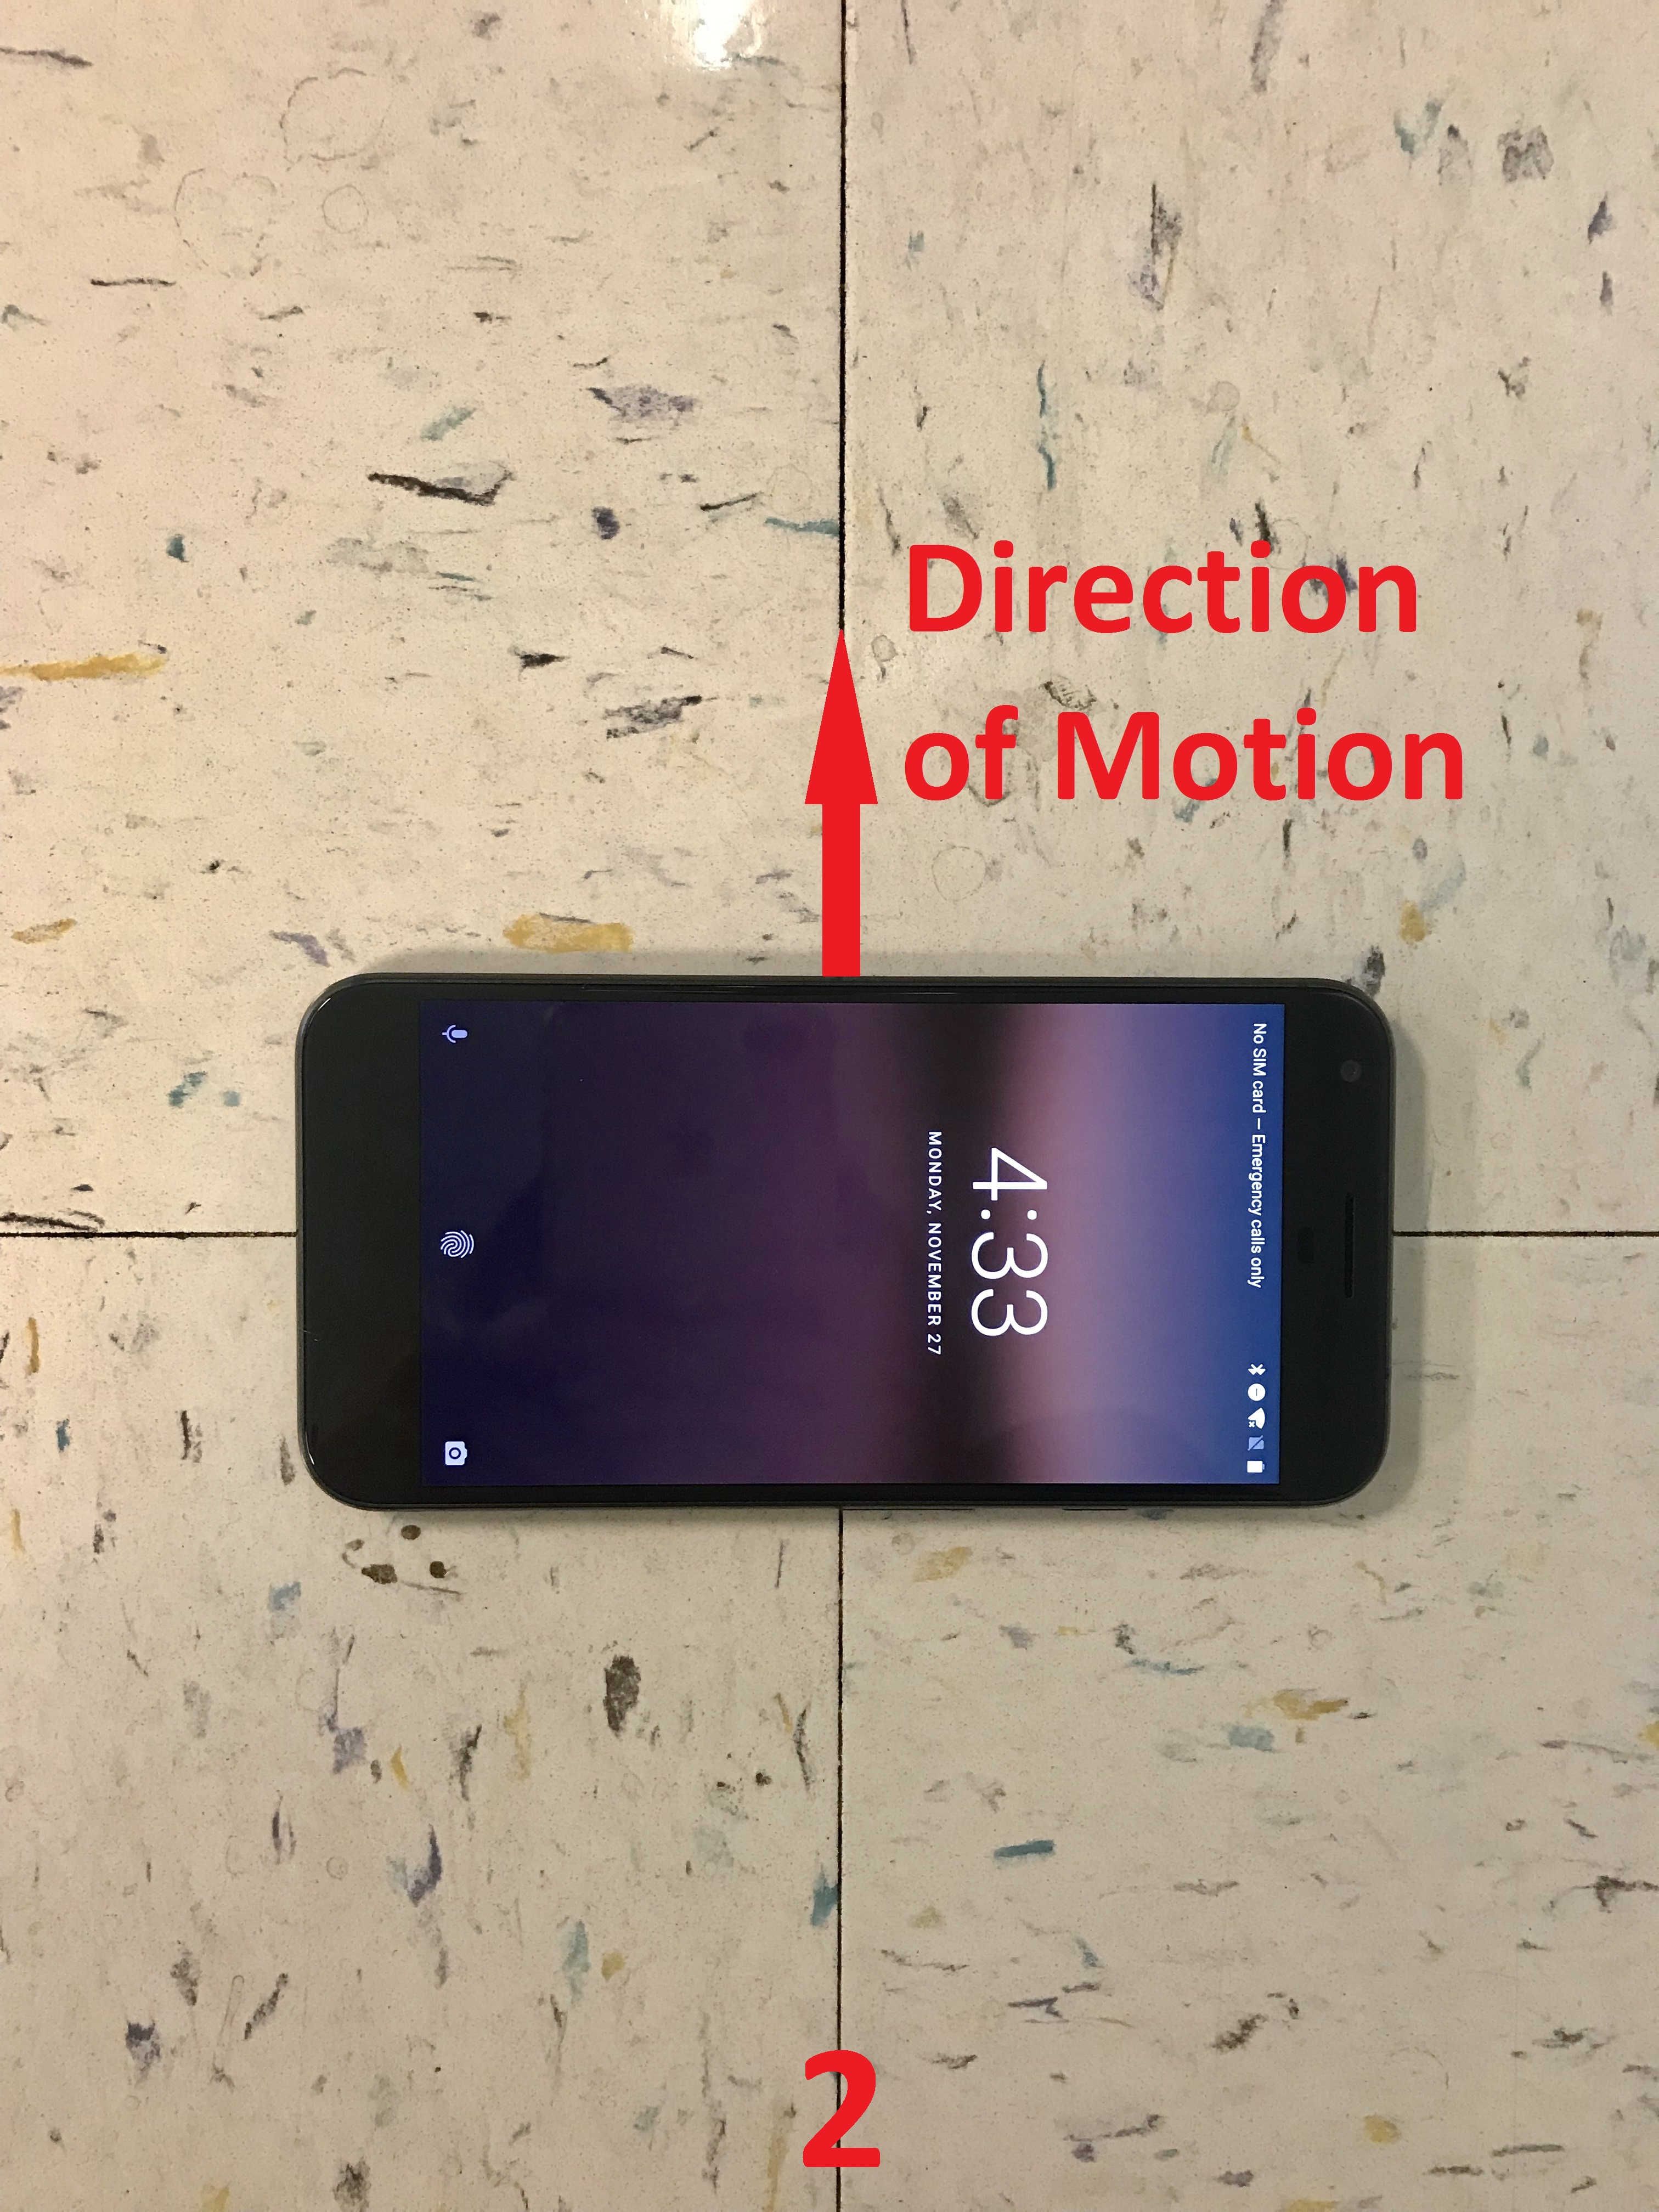 The y-axis of the phone pointing to the right (by 90 degrees) of the direction of motion